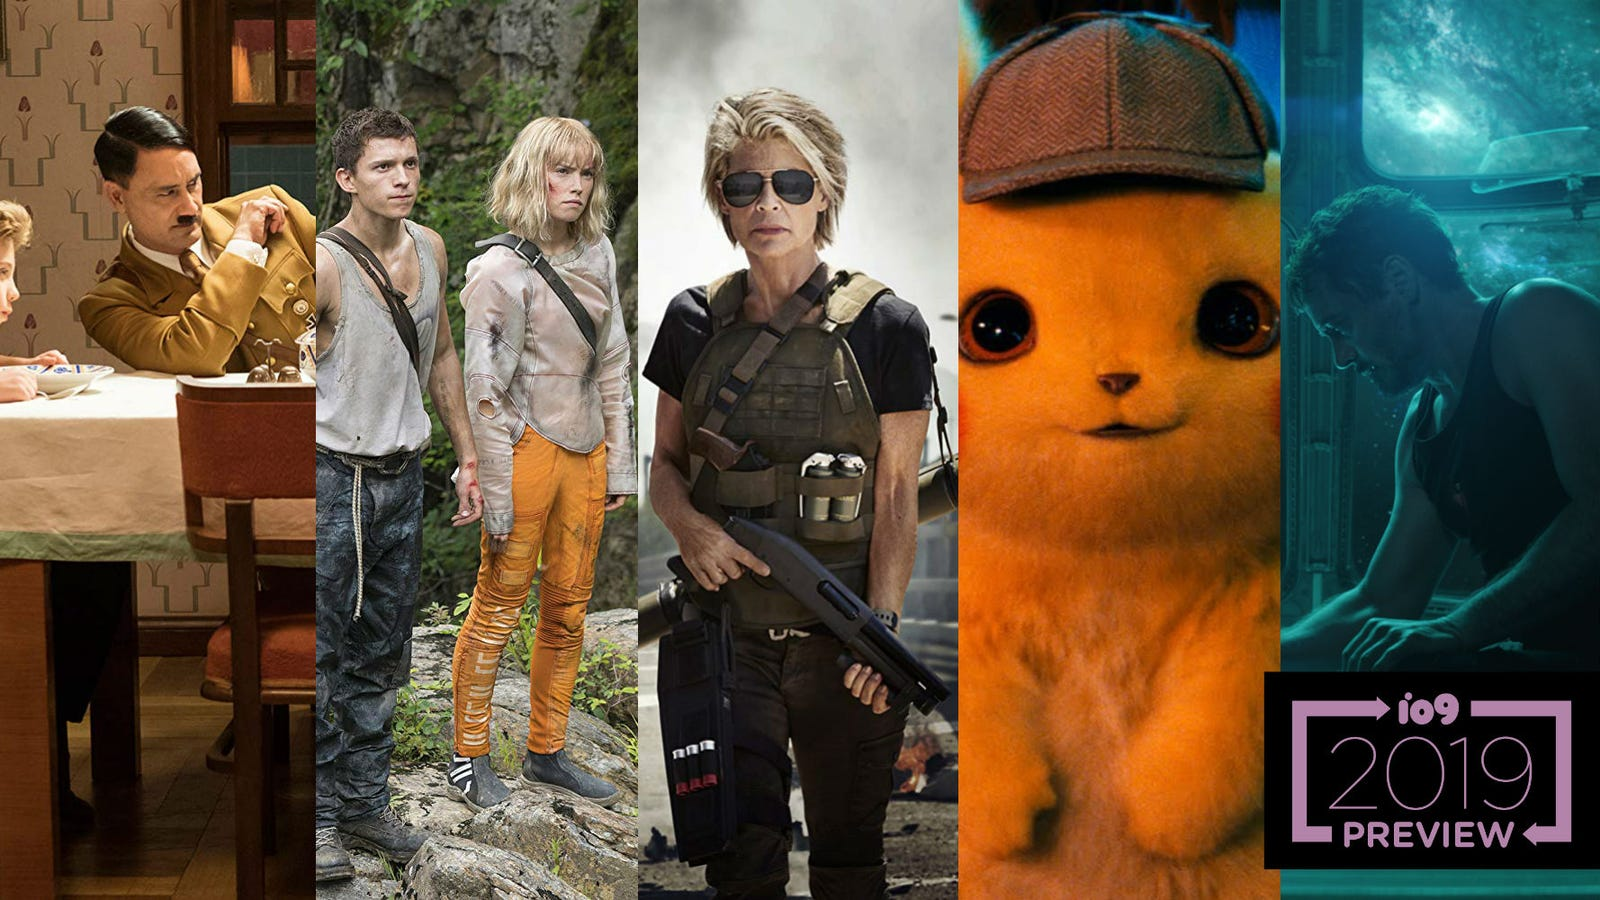 io9's Guide to All the Movies You Should Give a Damn About in 2019